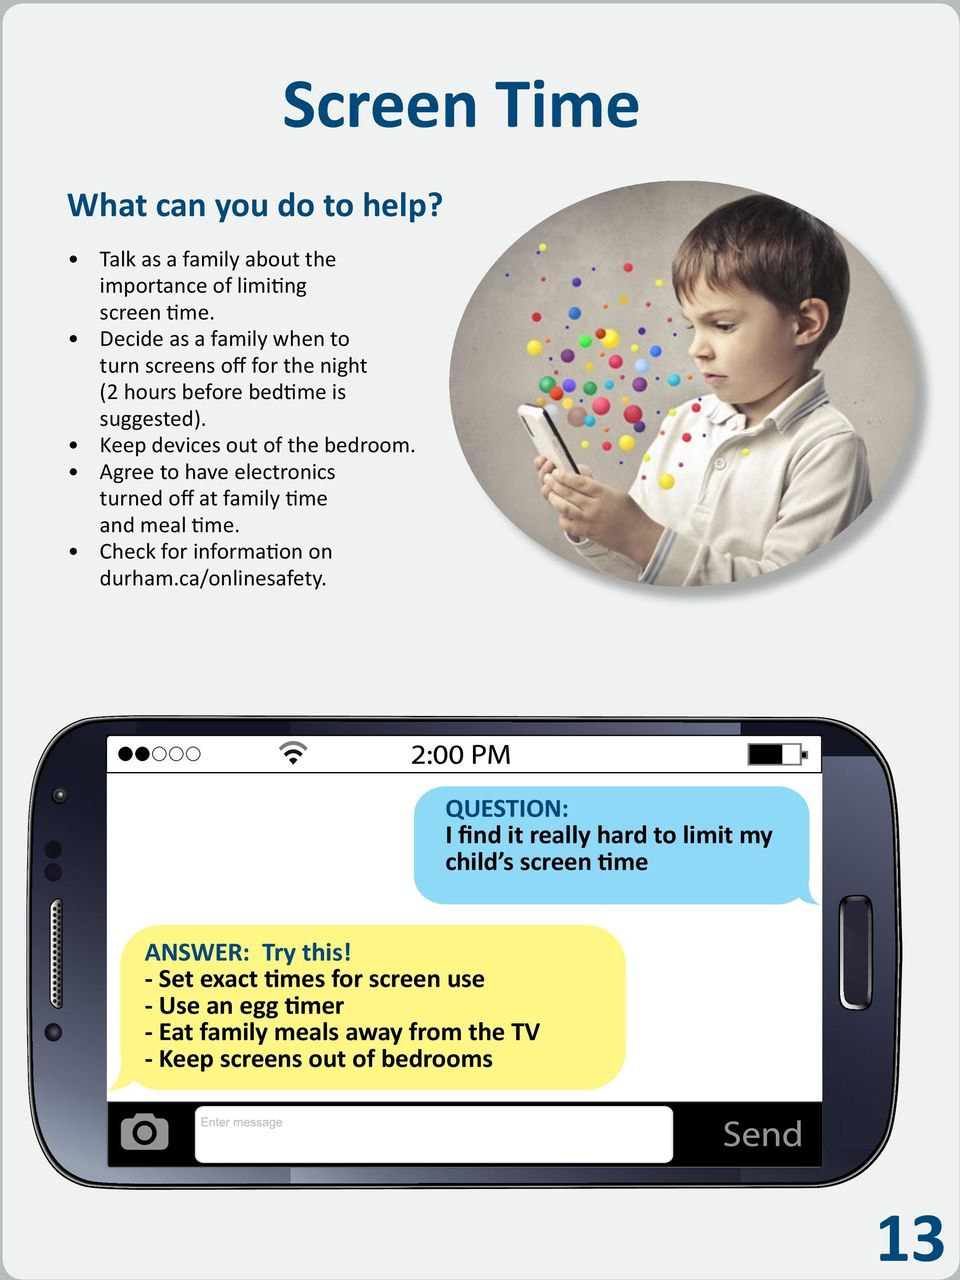 Agree to have electronics turned off at family time and meal time. Check for information on durham.ca/onlinesafety.